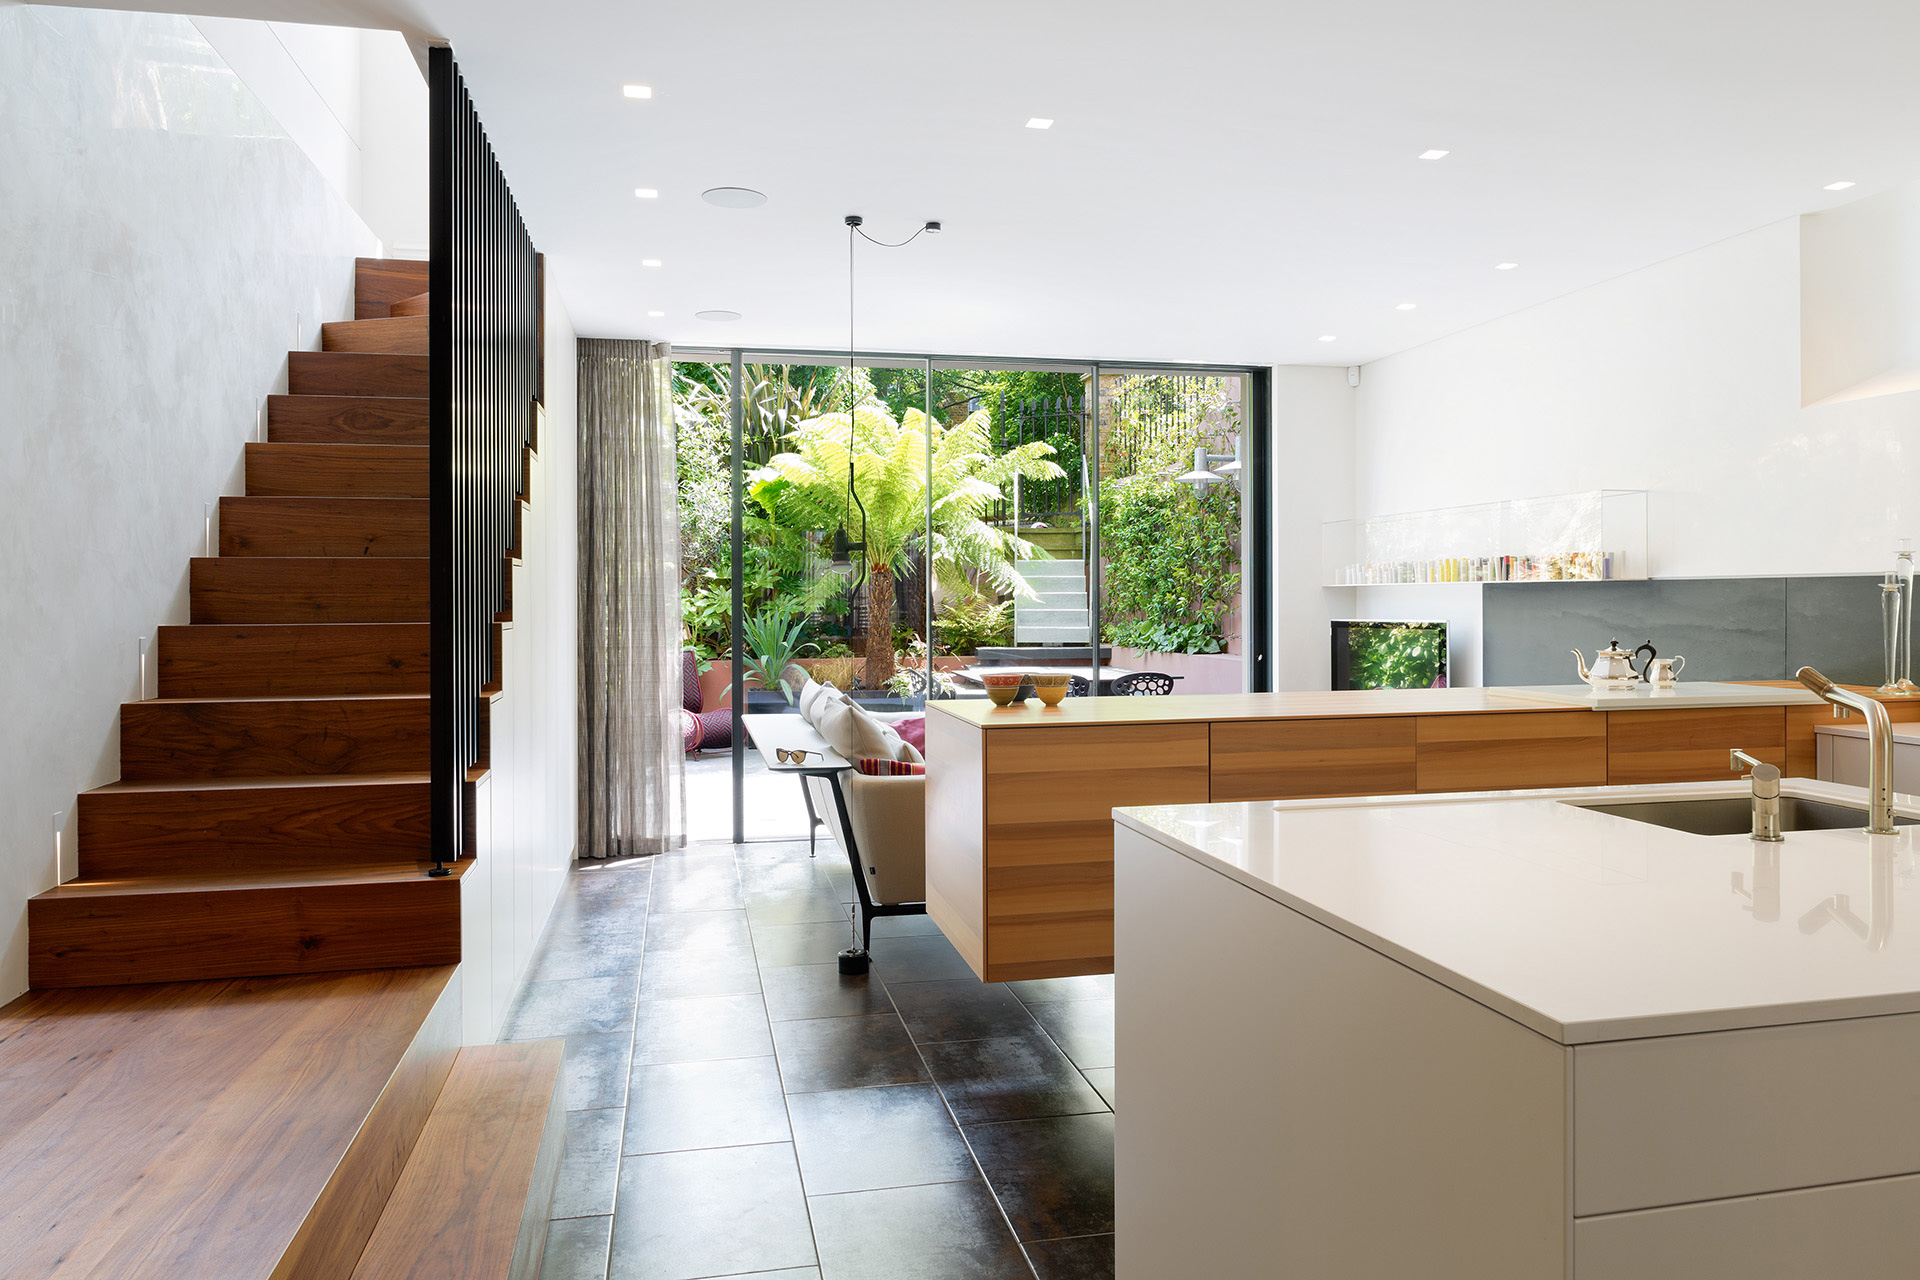 Studio 29 residential architects garden holland park 2